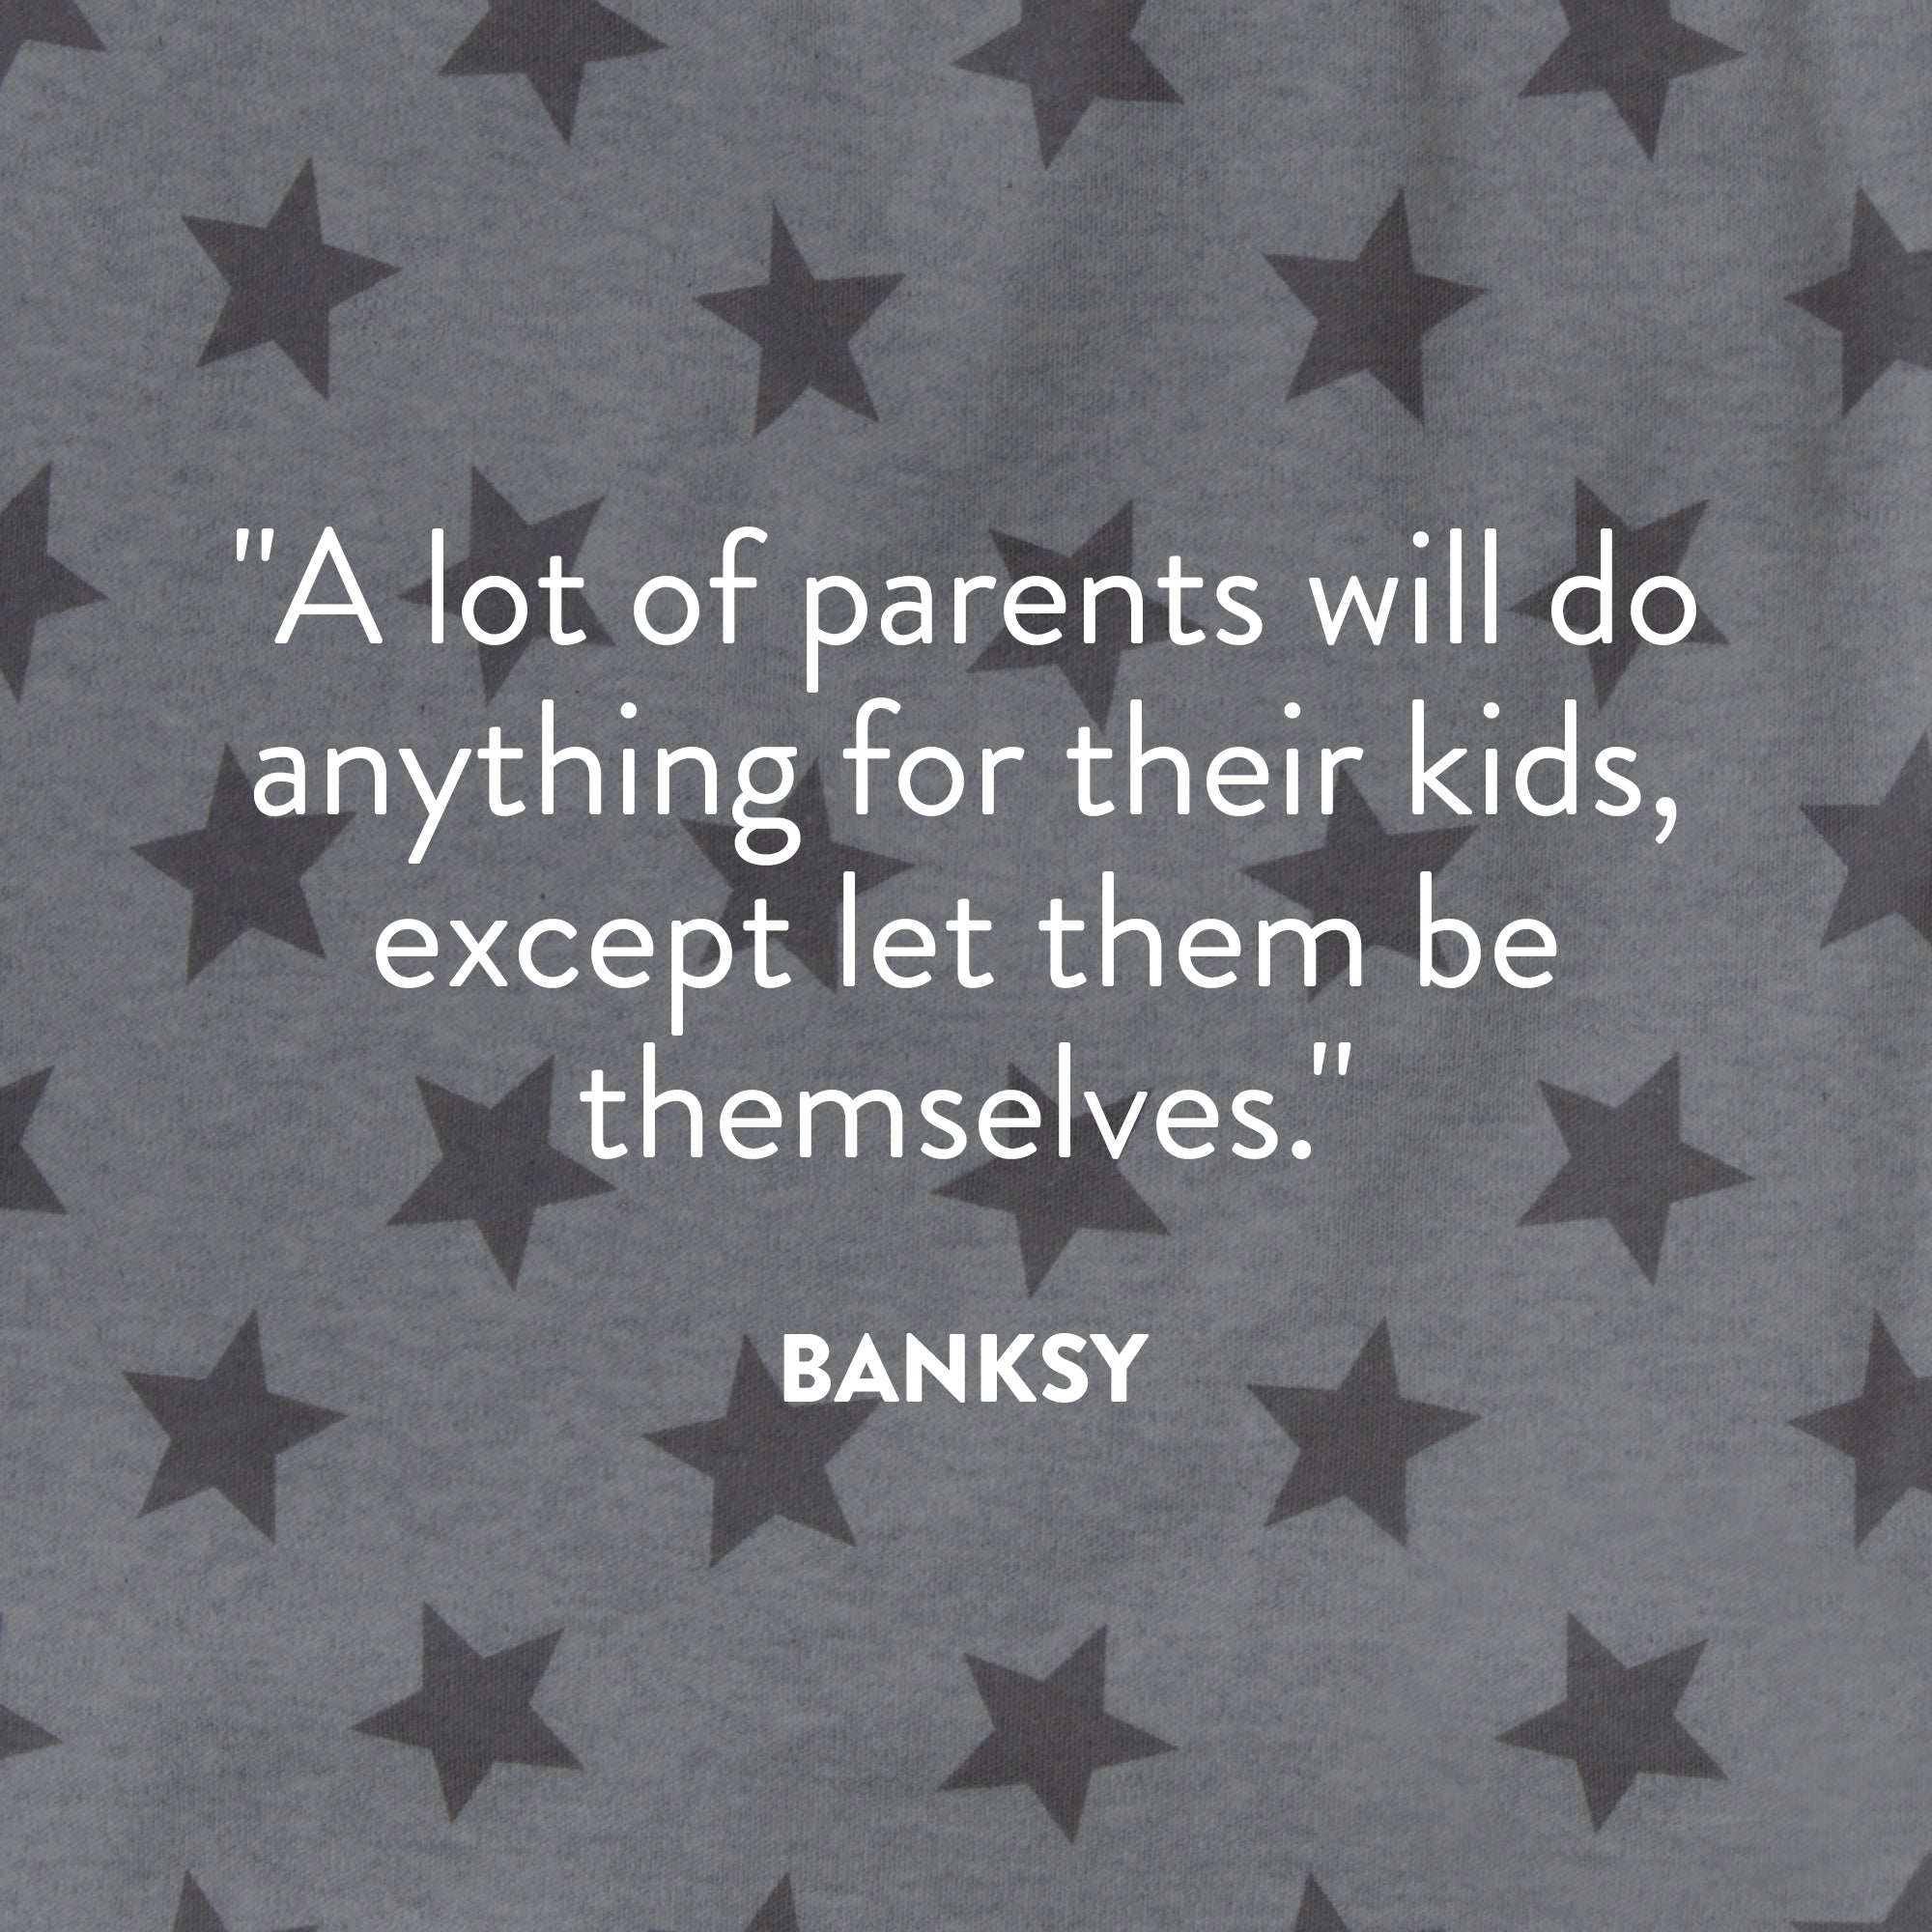 Banksy quote graphic